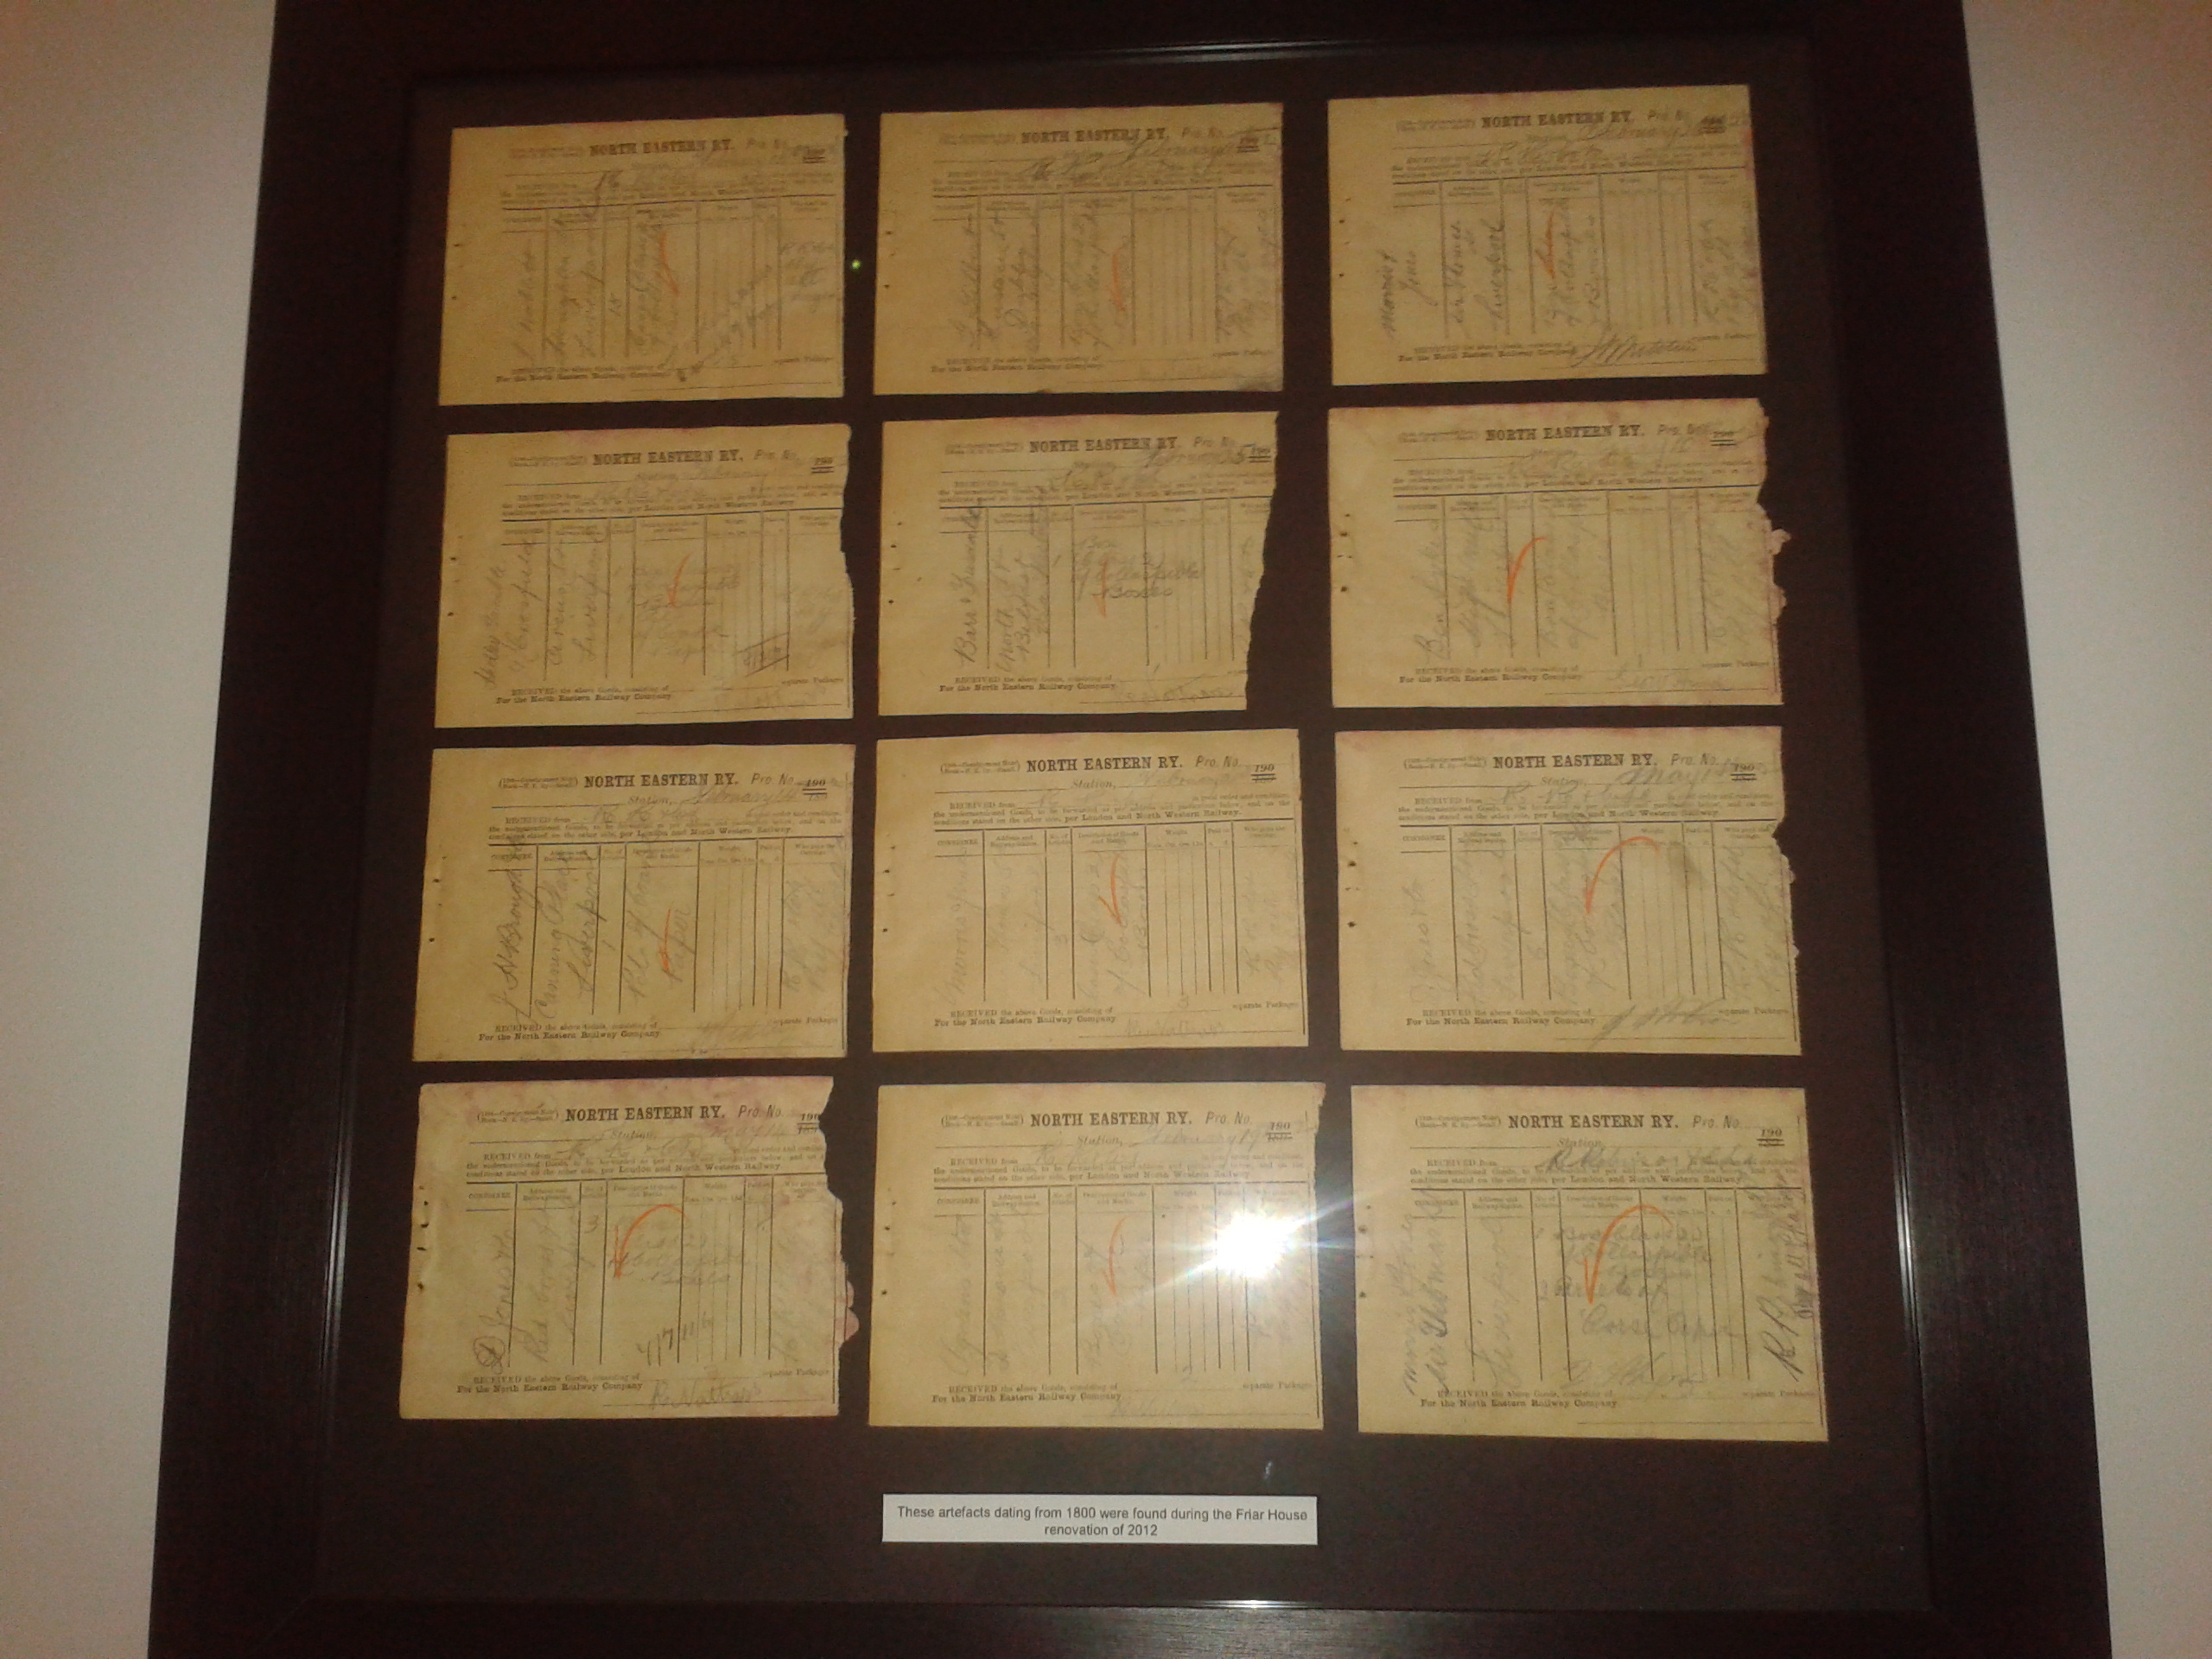 Original documents found in the building